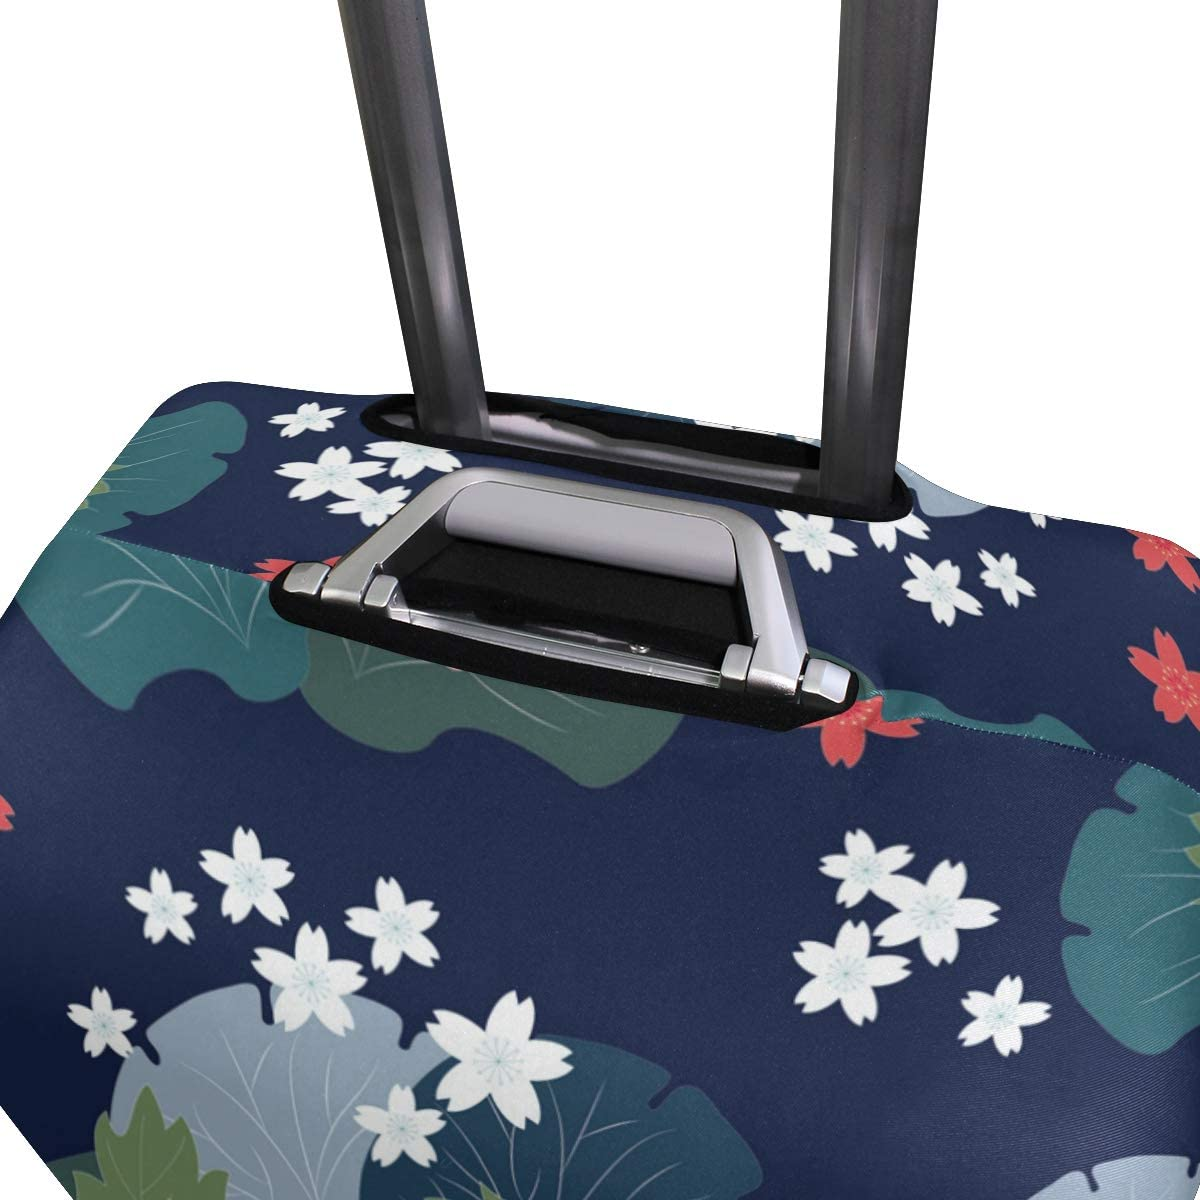 FOLPPLY Vintage Floral Print Luggage Cover Baggage Suitcase Travel Protector Fit for 18-32 Inch